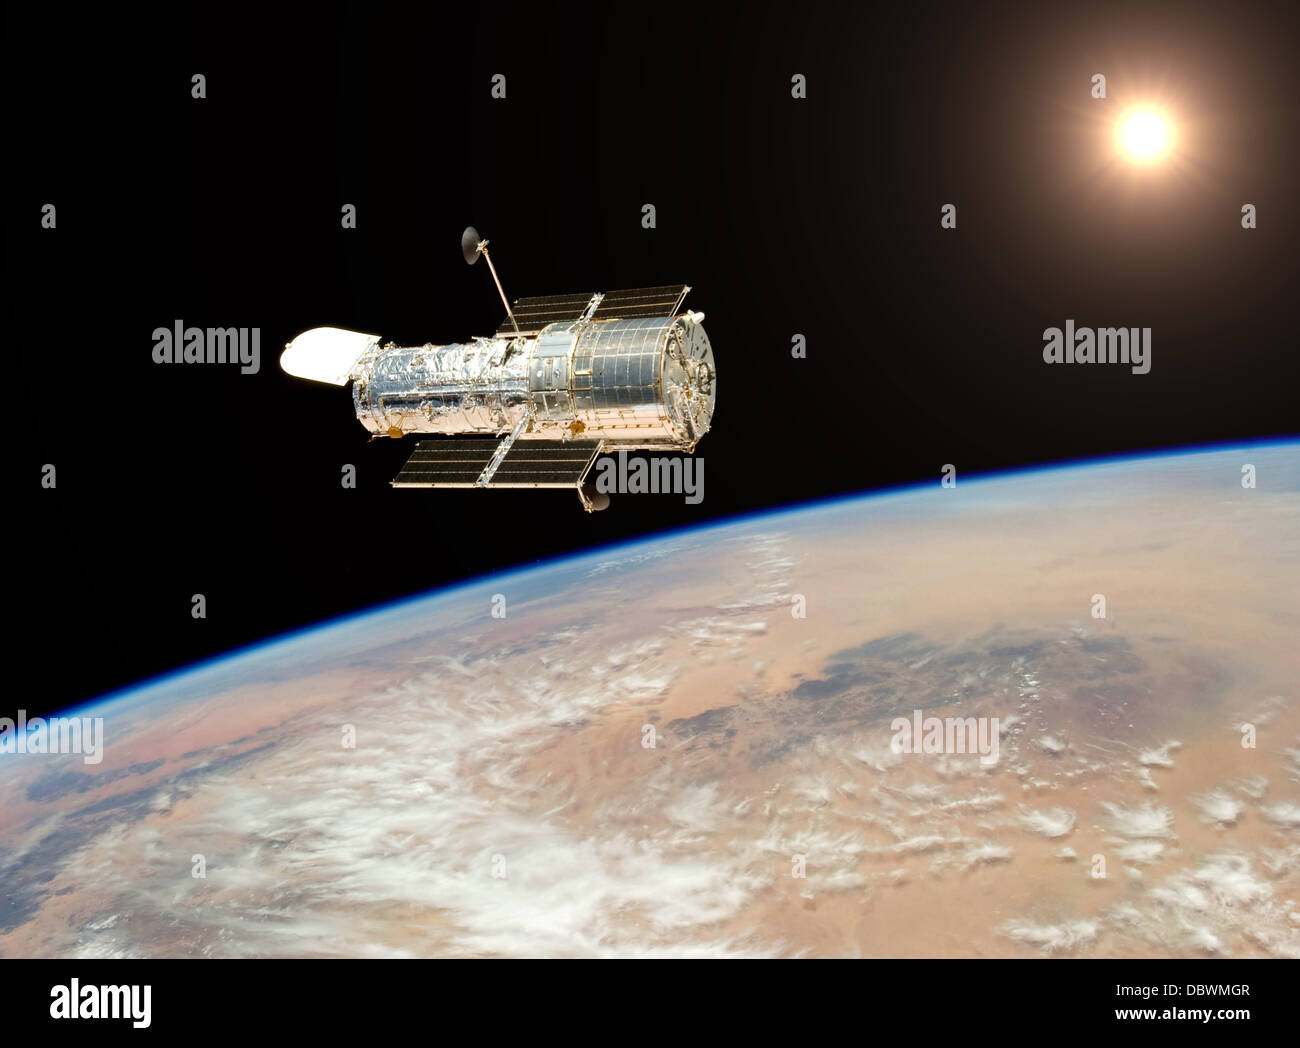 Hubble telescope hovers 350 miles above earth photographing for space exploration - Stock Image